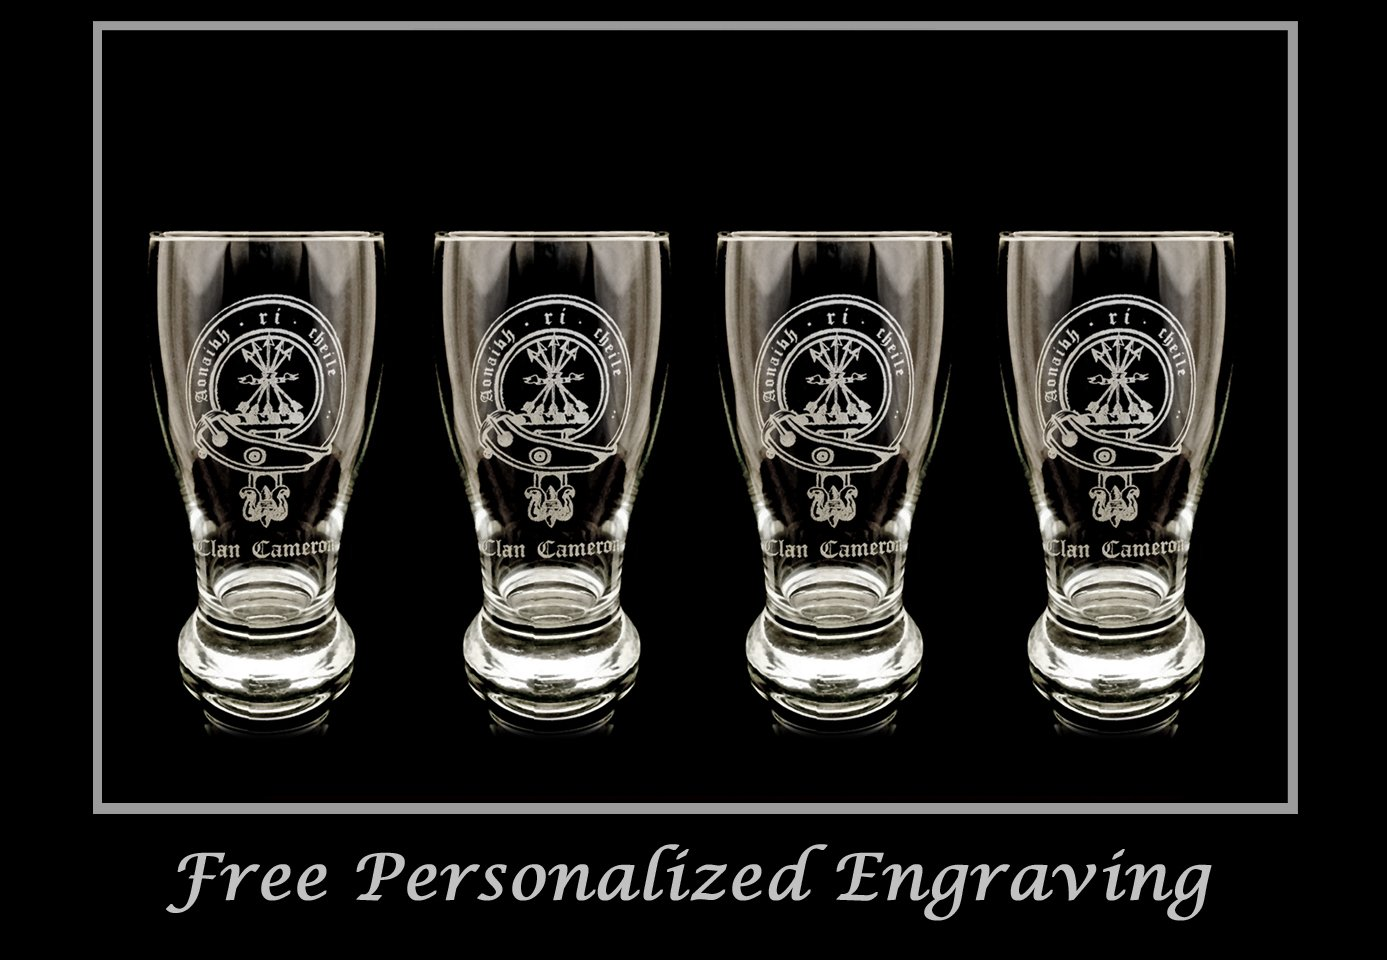 Clan Cameron Scottish Crest Pint Glass Set of 4- Free Personalized Engraving, Family Crest, Pub Glass, Beer Glass, Custom Beer Glass